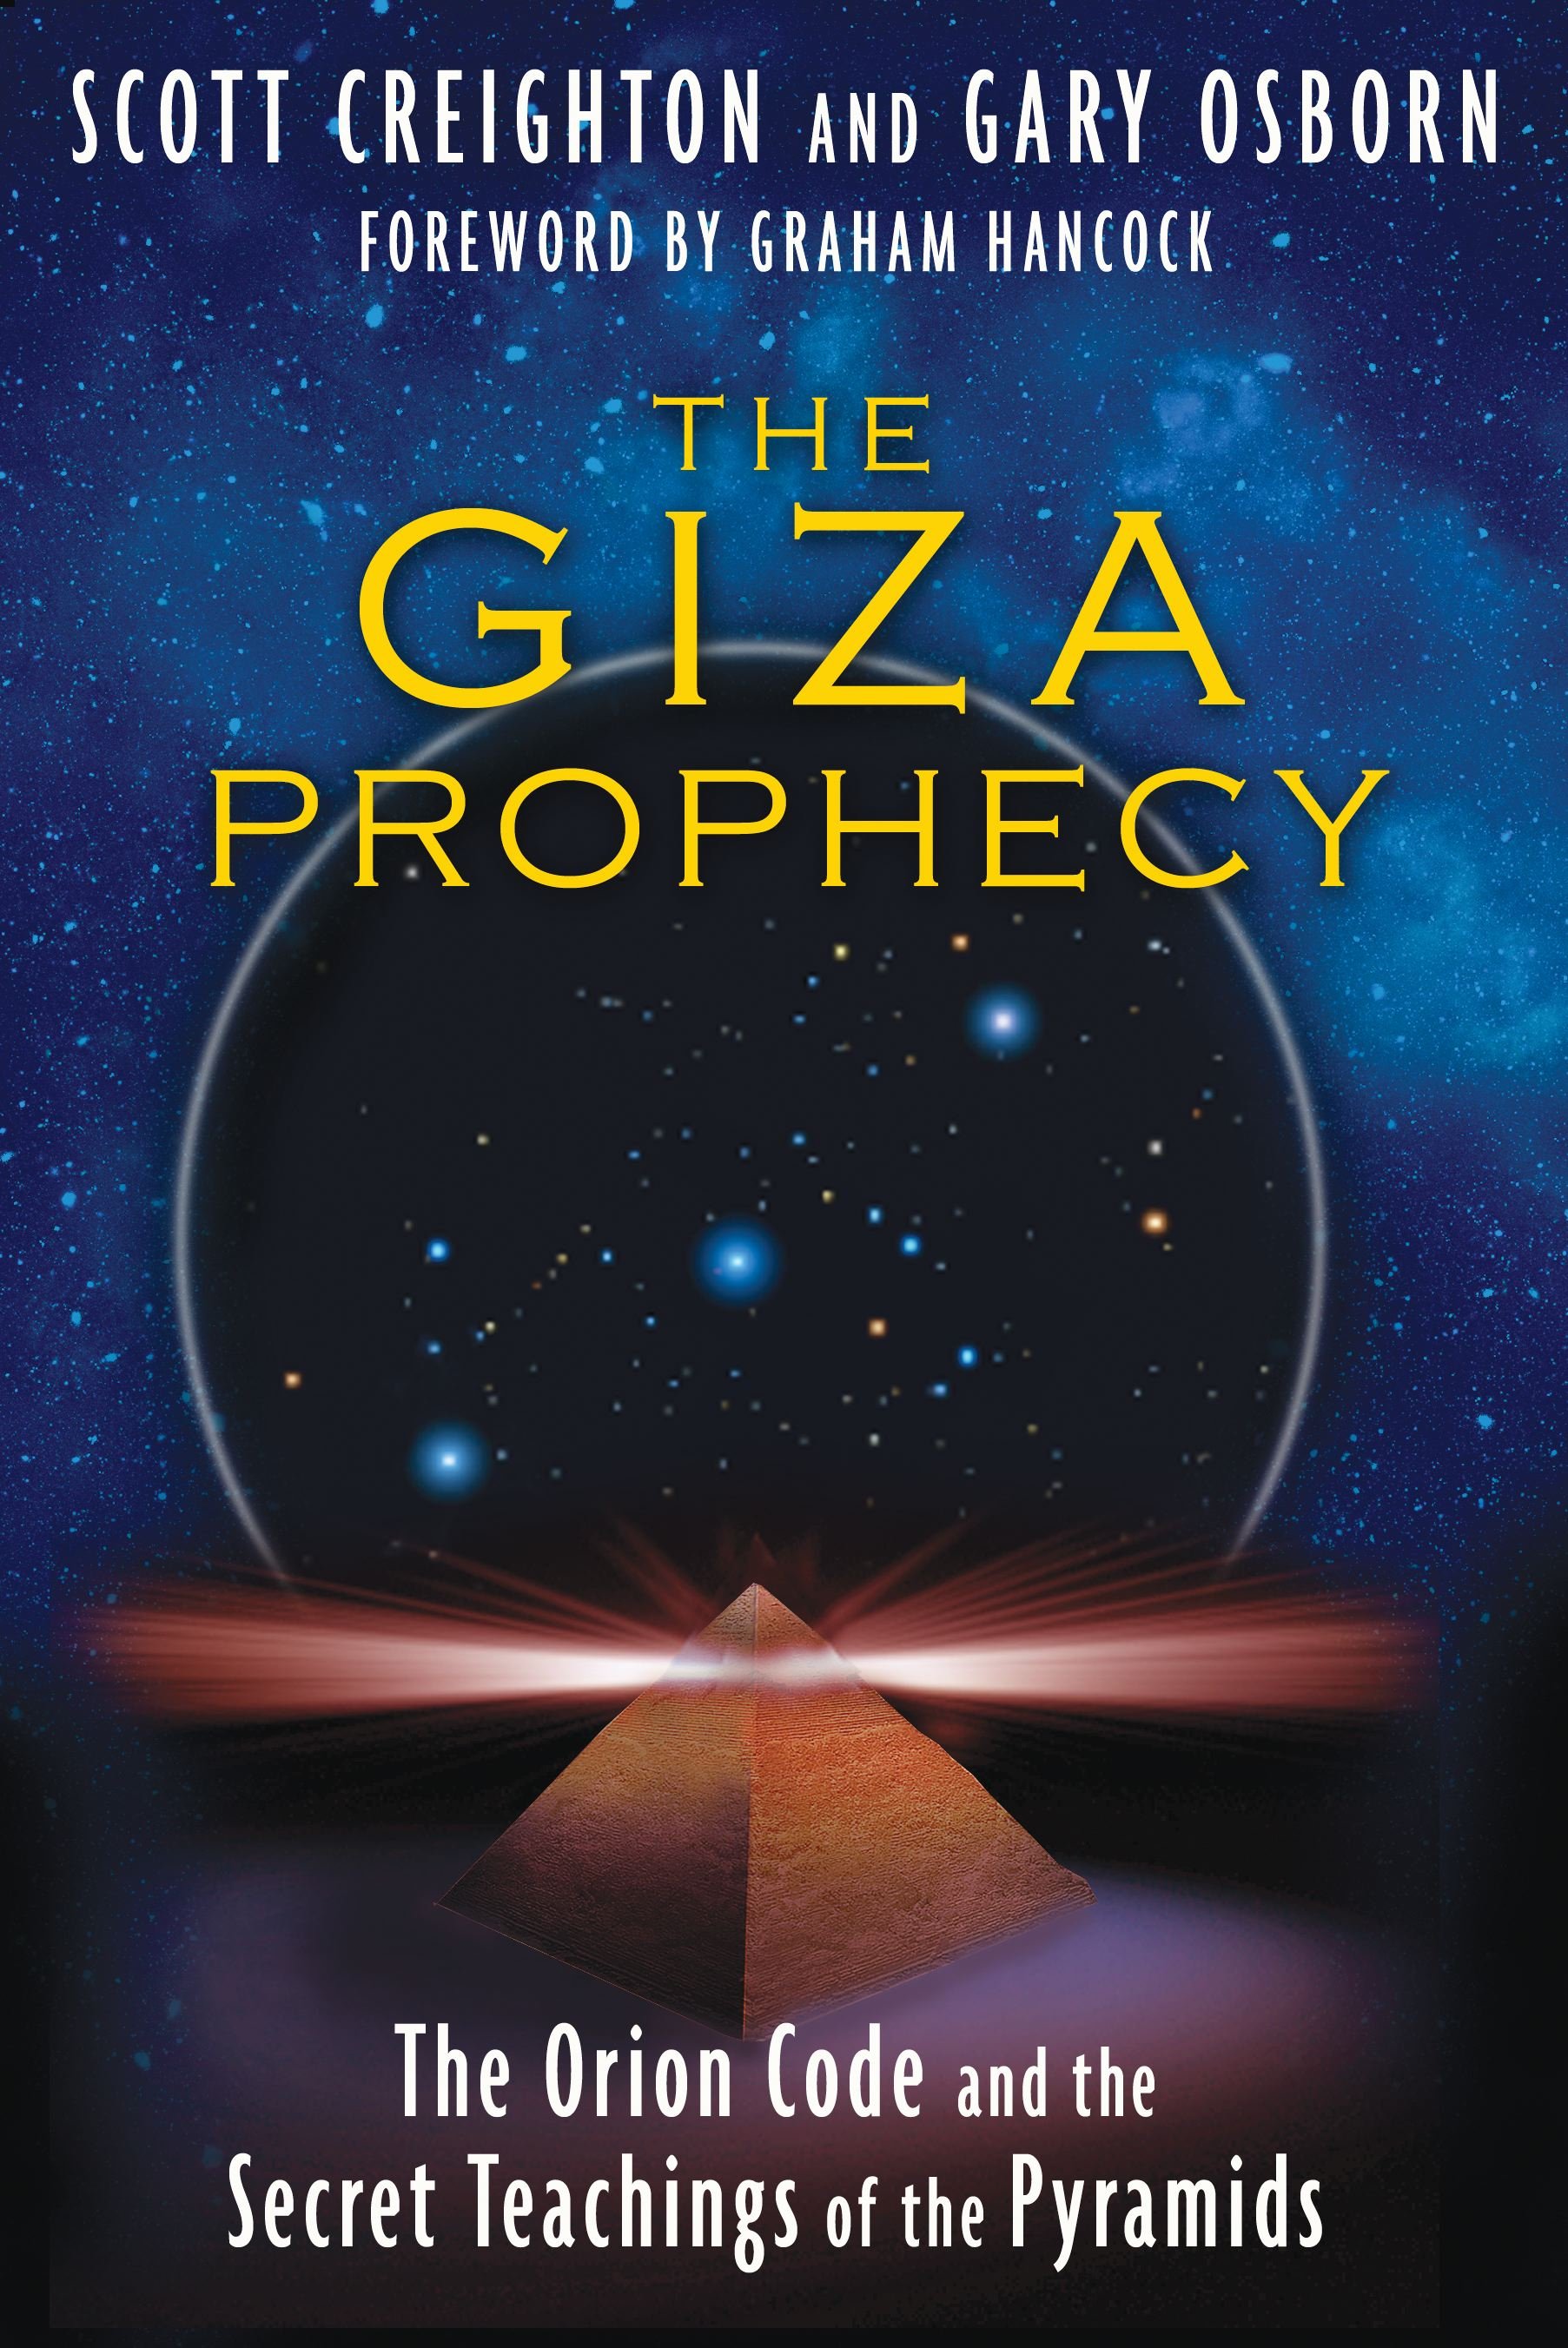 The giza prophecy 9781591431329 hr